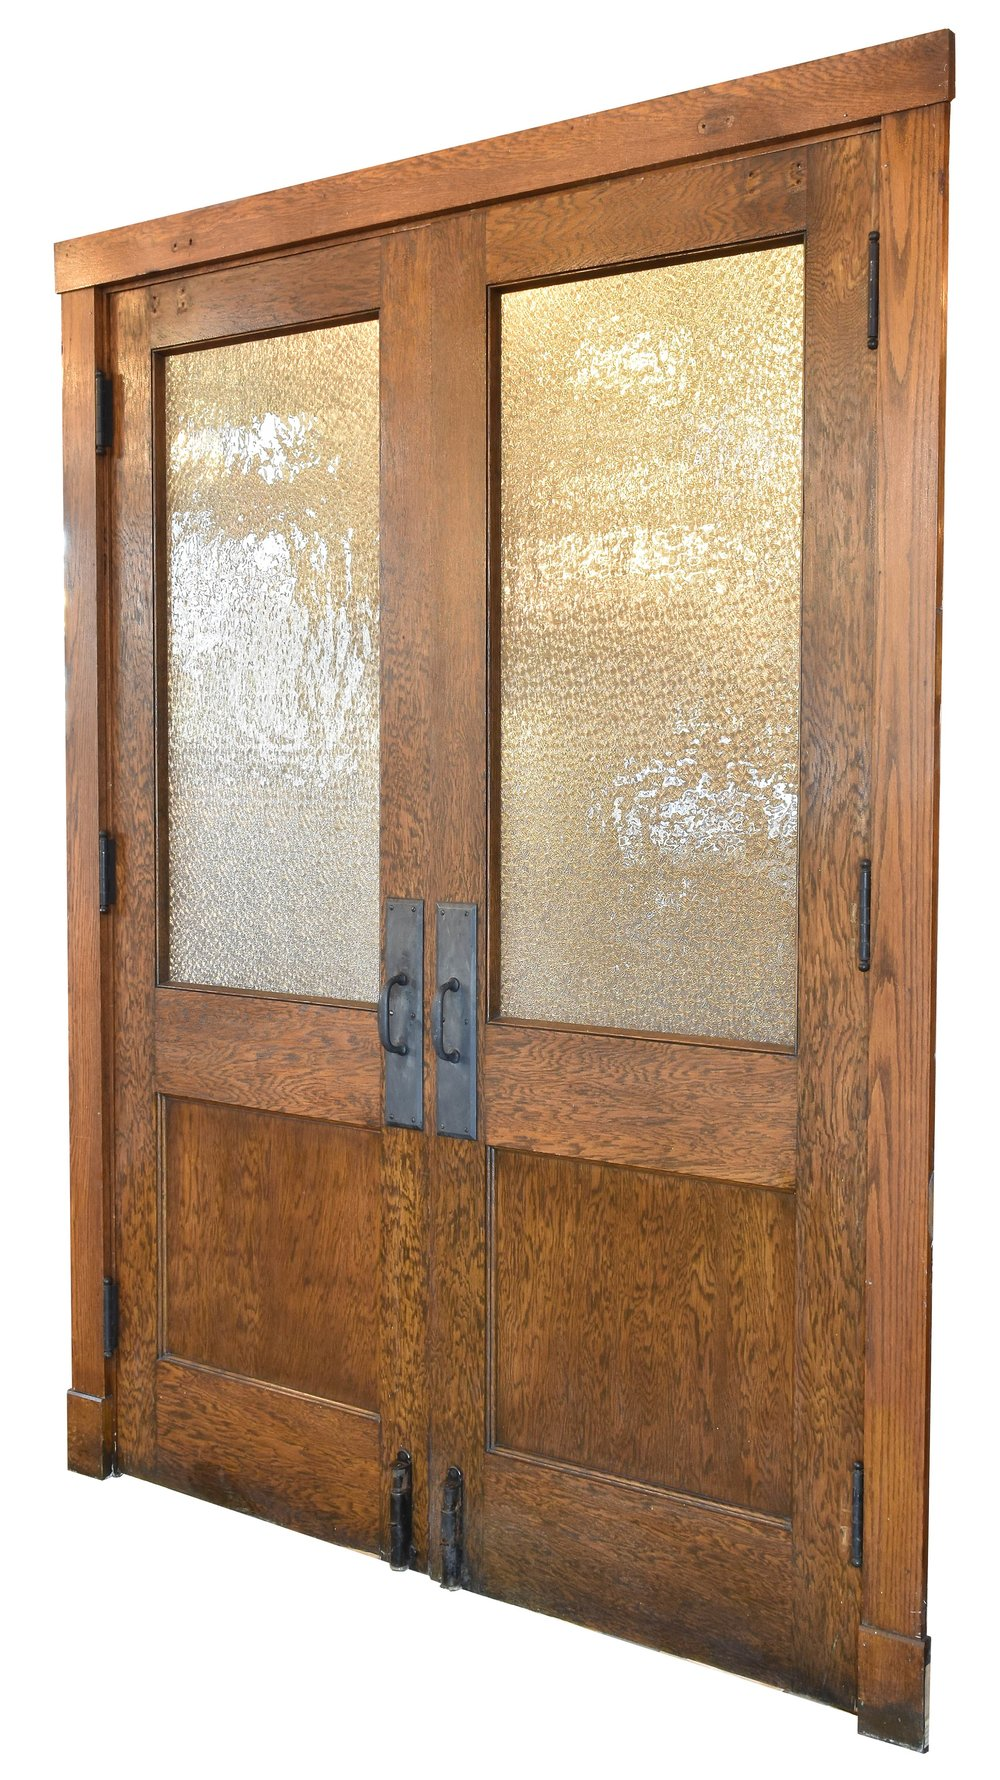 half view oak double doors  sc 1 st  Architectural Antiques & half view oak double doors u2014 ARCHITECTURAL ANTIQUES